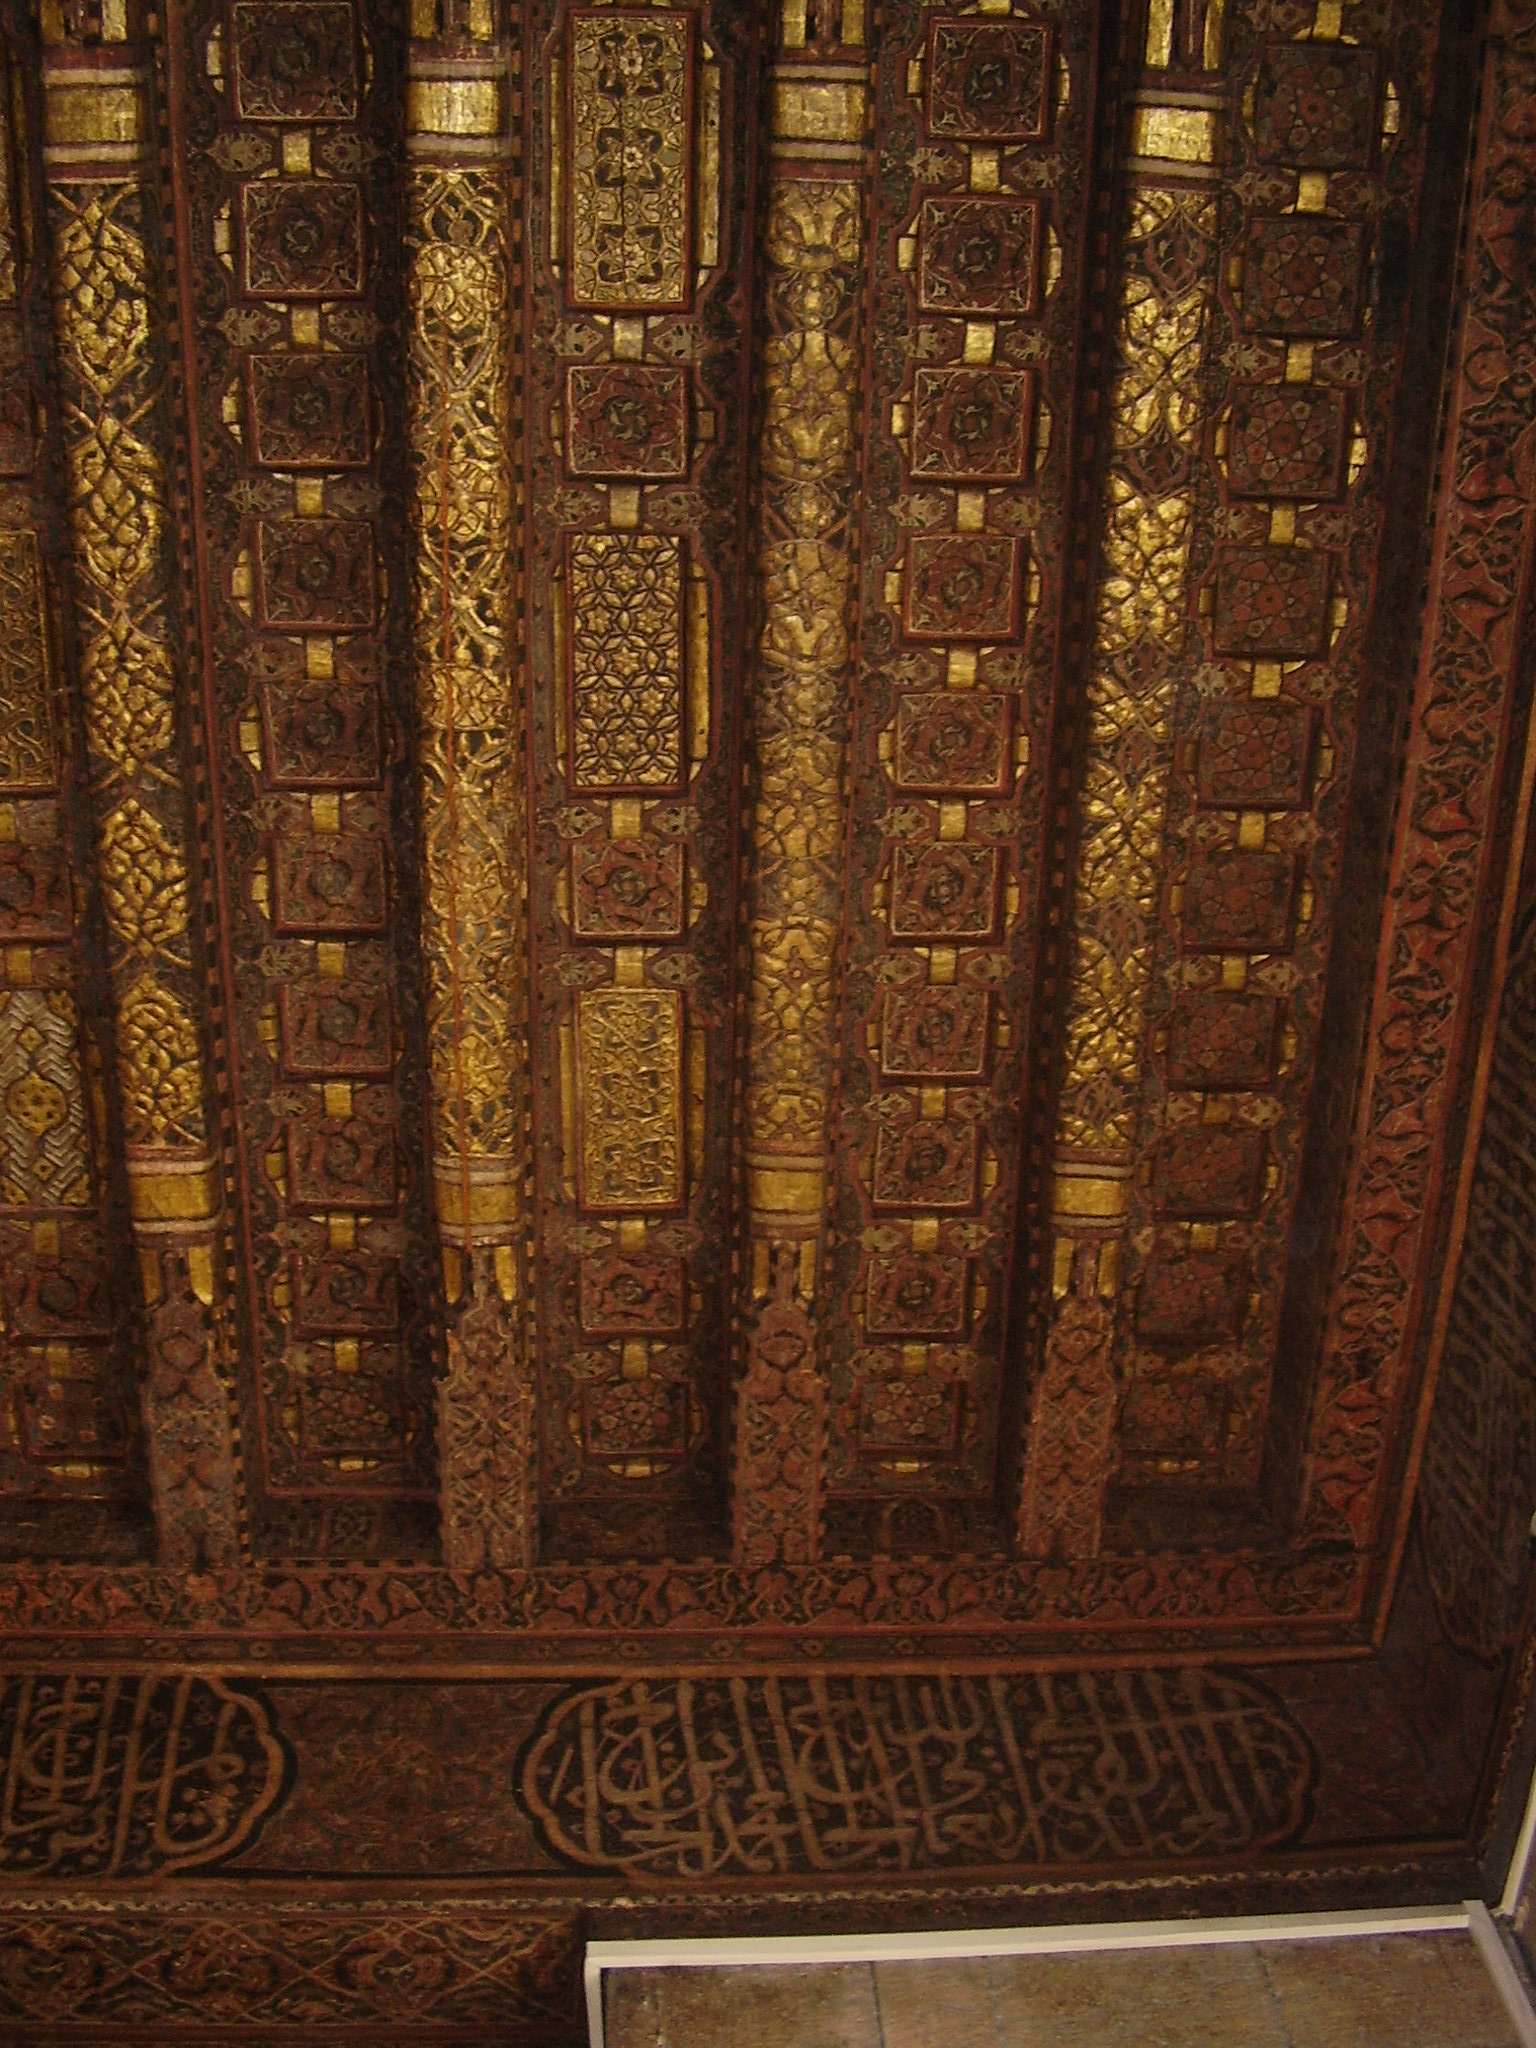 Ceiling of Sabil room